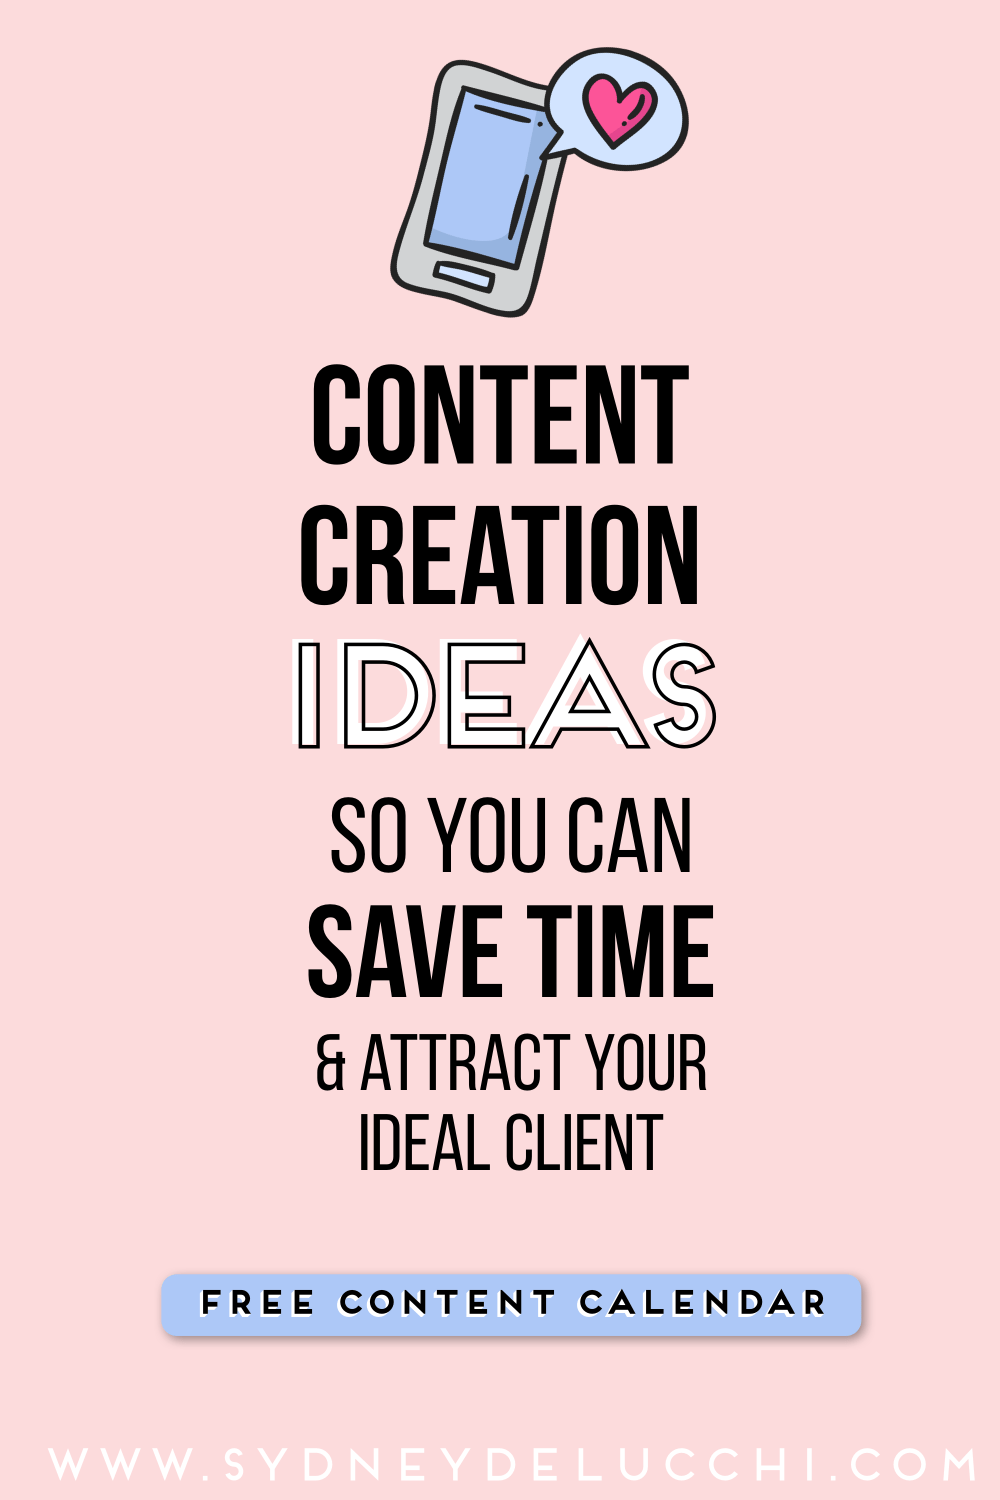 content creation ideas from sydney delucchi